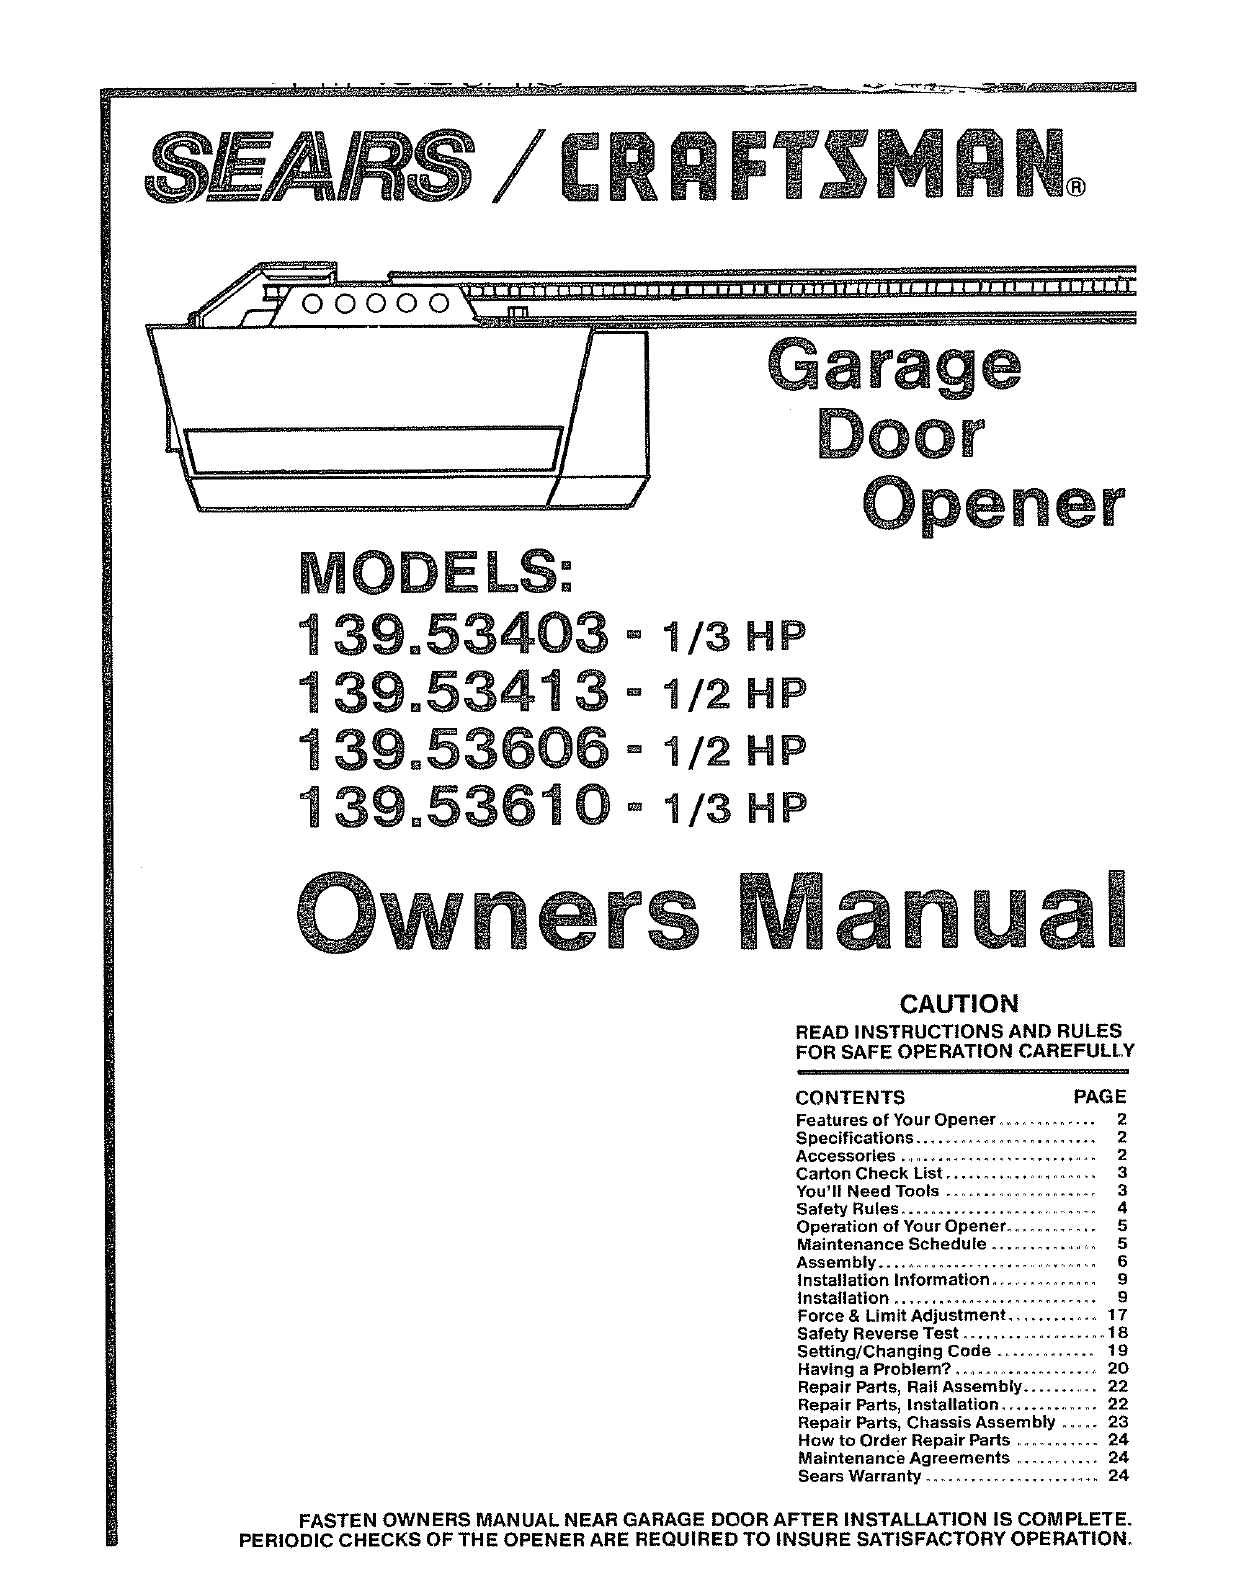 4e24e83f 95d3 4892 ae01 8deb09c598a8 bg1 craftsman garage door opener 139 53403 user guide manualsonline com Chamberlain Garage Door Opener Wiring- Diagram at webbmarketing.co